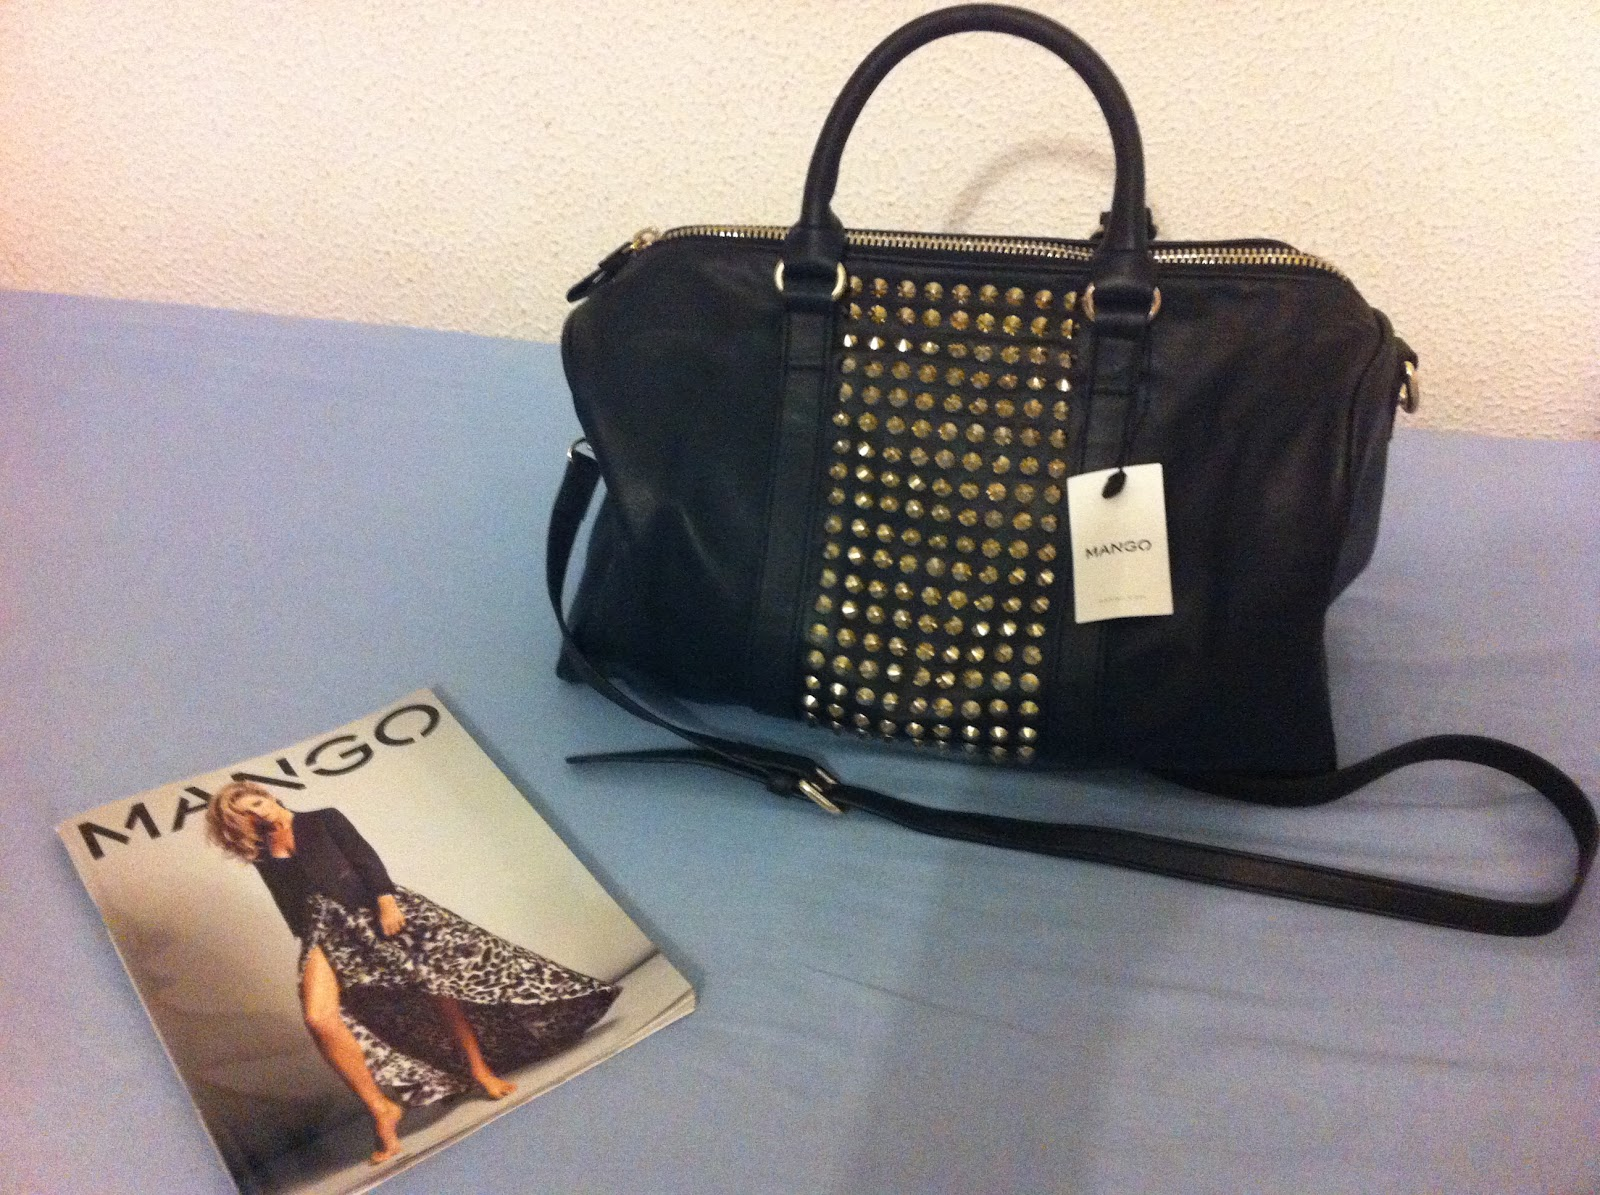 Pretty Bag With A Shoulder Strap And Couldn T Find Any I Liked Again Ended Up In Mango Spotted This Black Leather Gold Studs